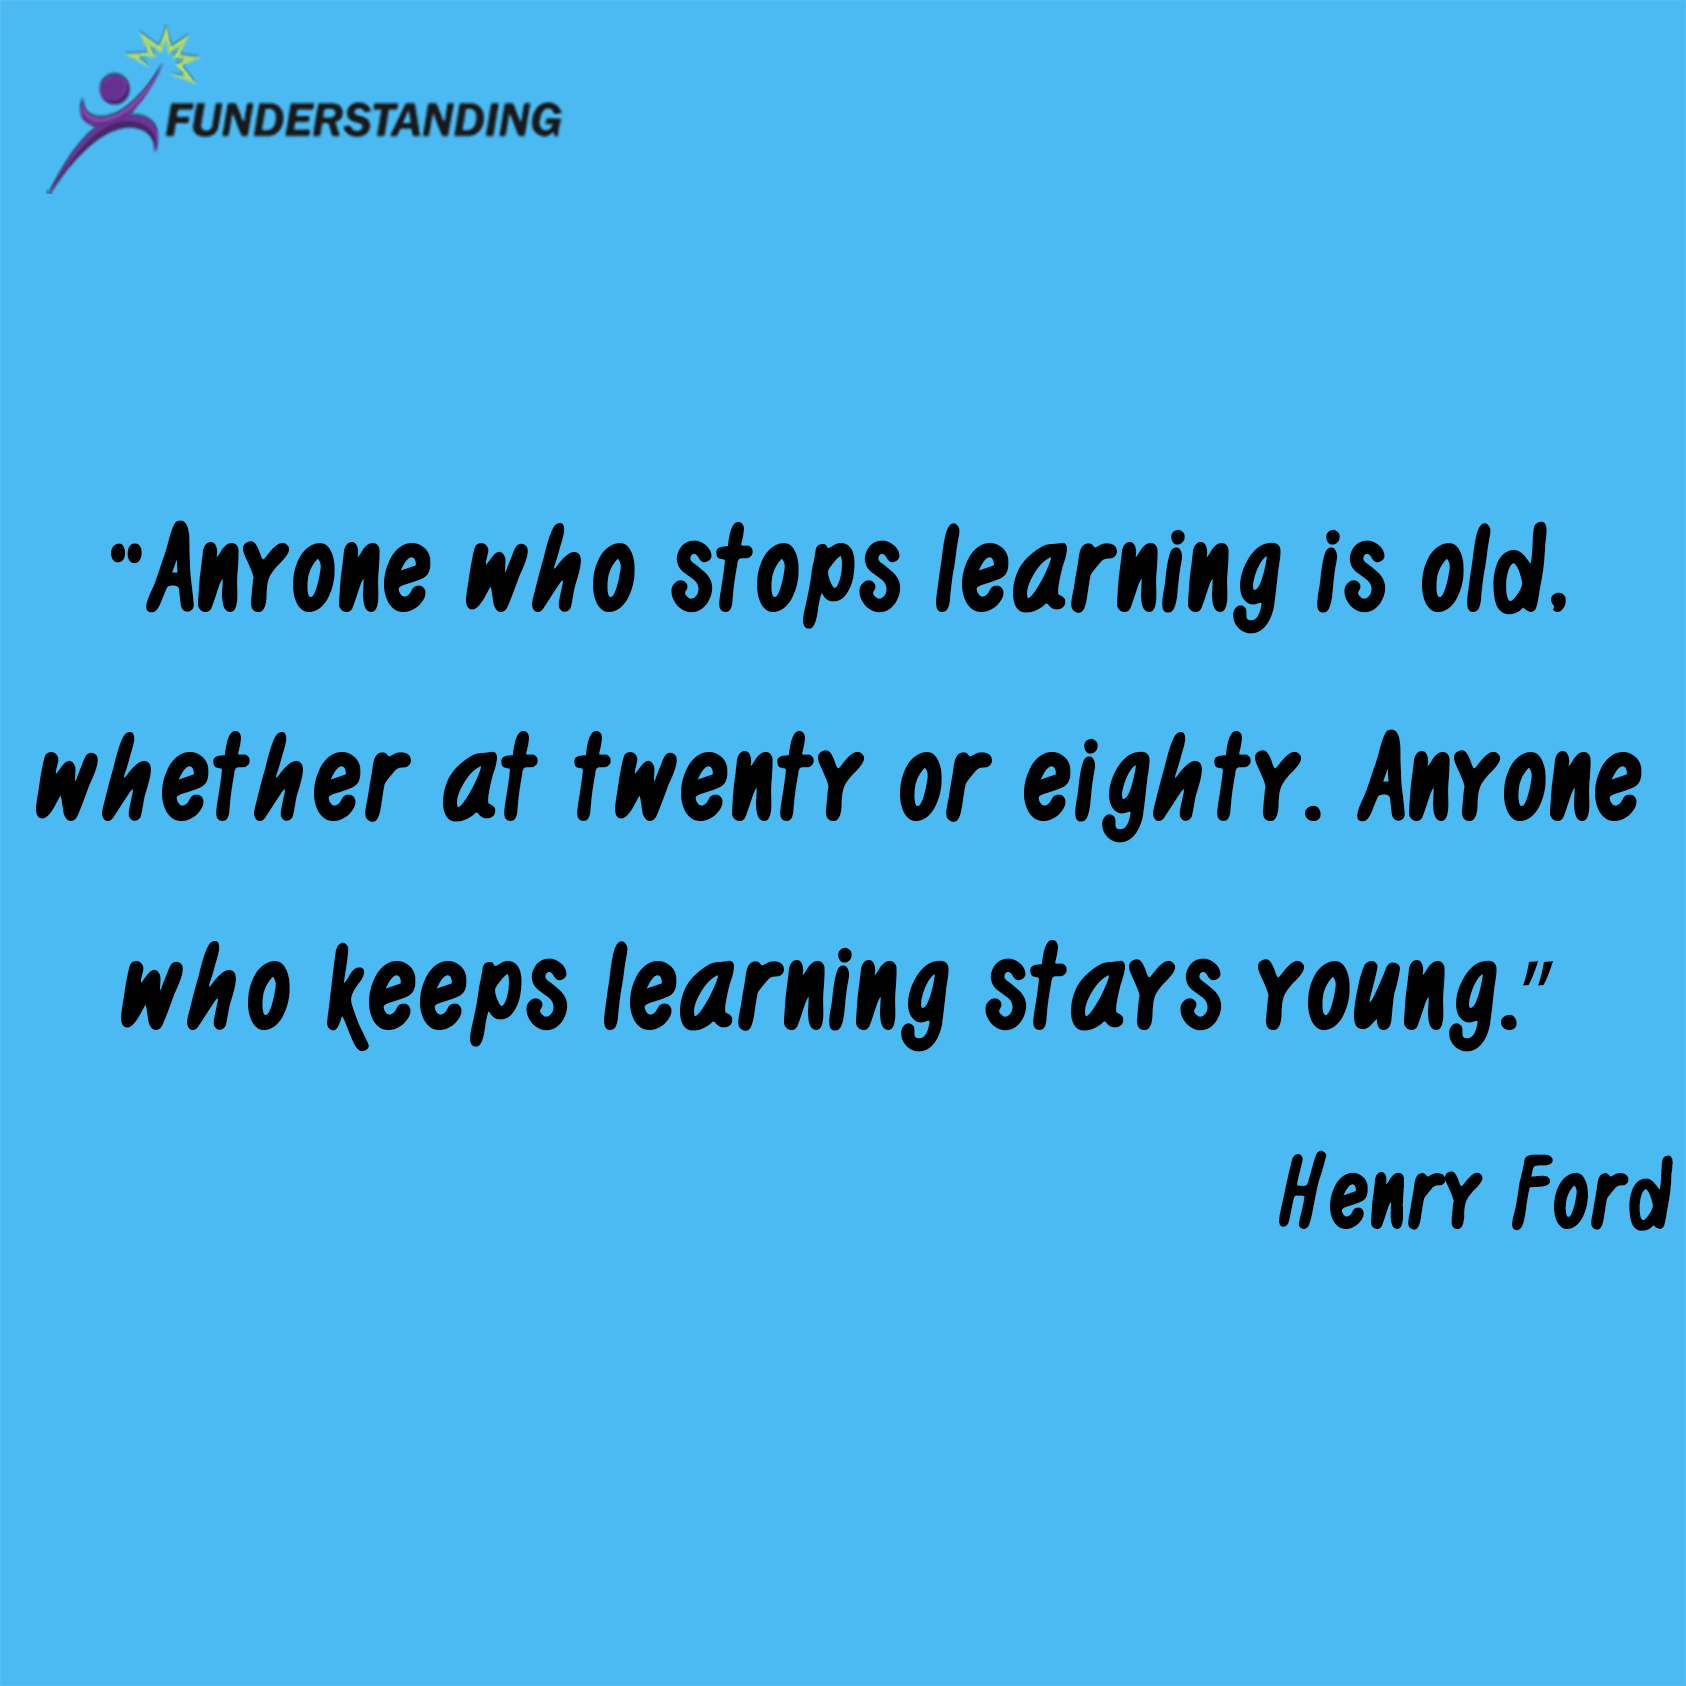 Quotes On Learning Interesting Quote Of The Day  Funderstanding  Are You Still Young  A . Inspiration